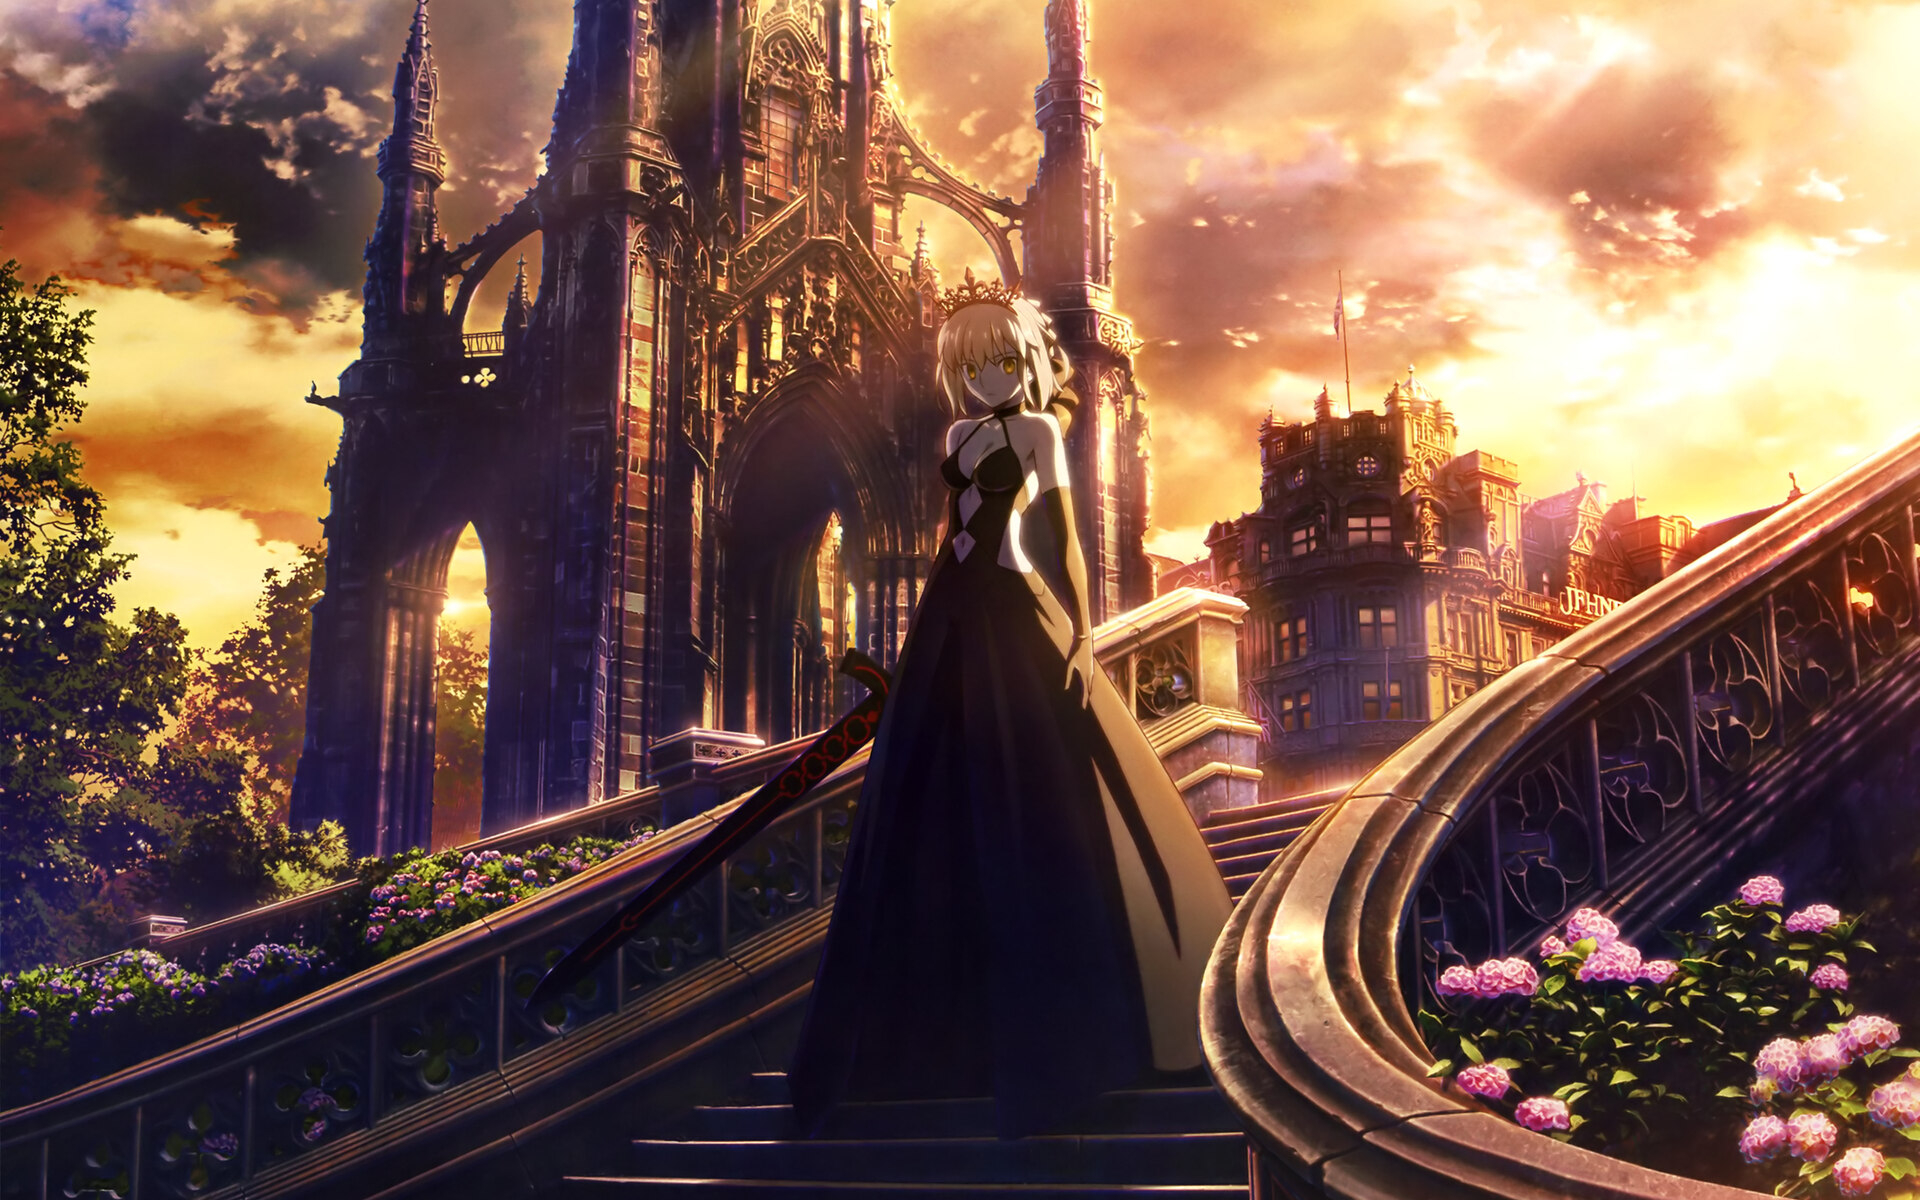 fate stay night anime girl walking through stairs